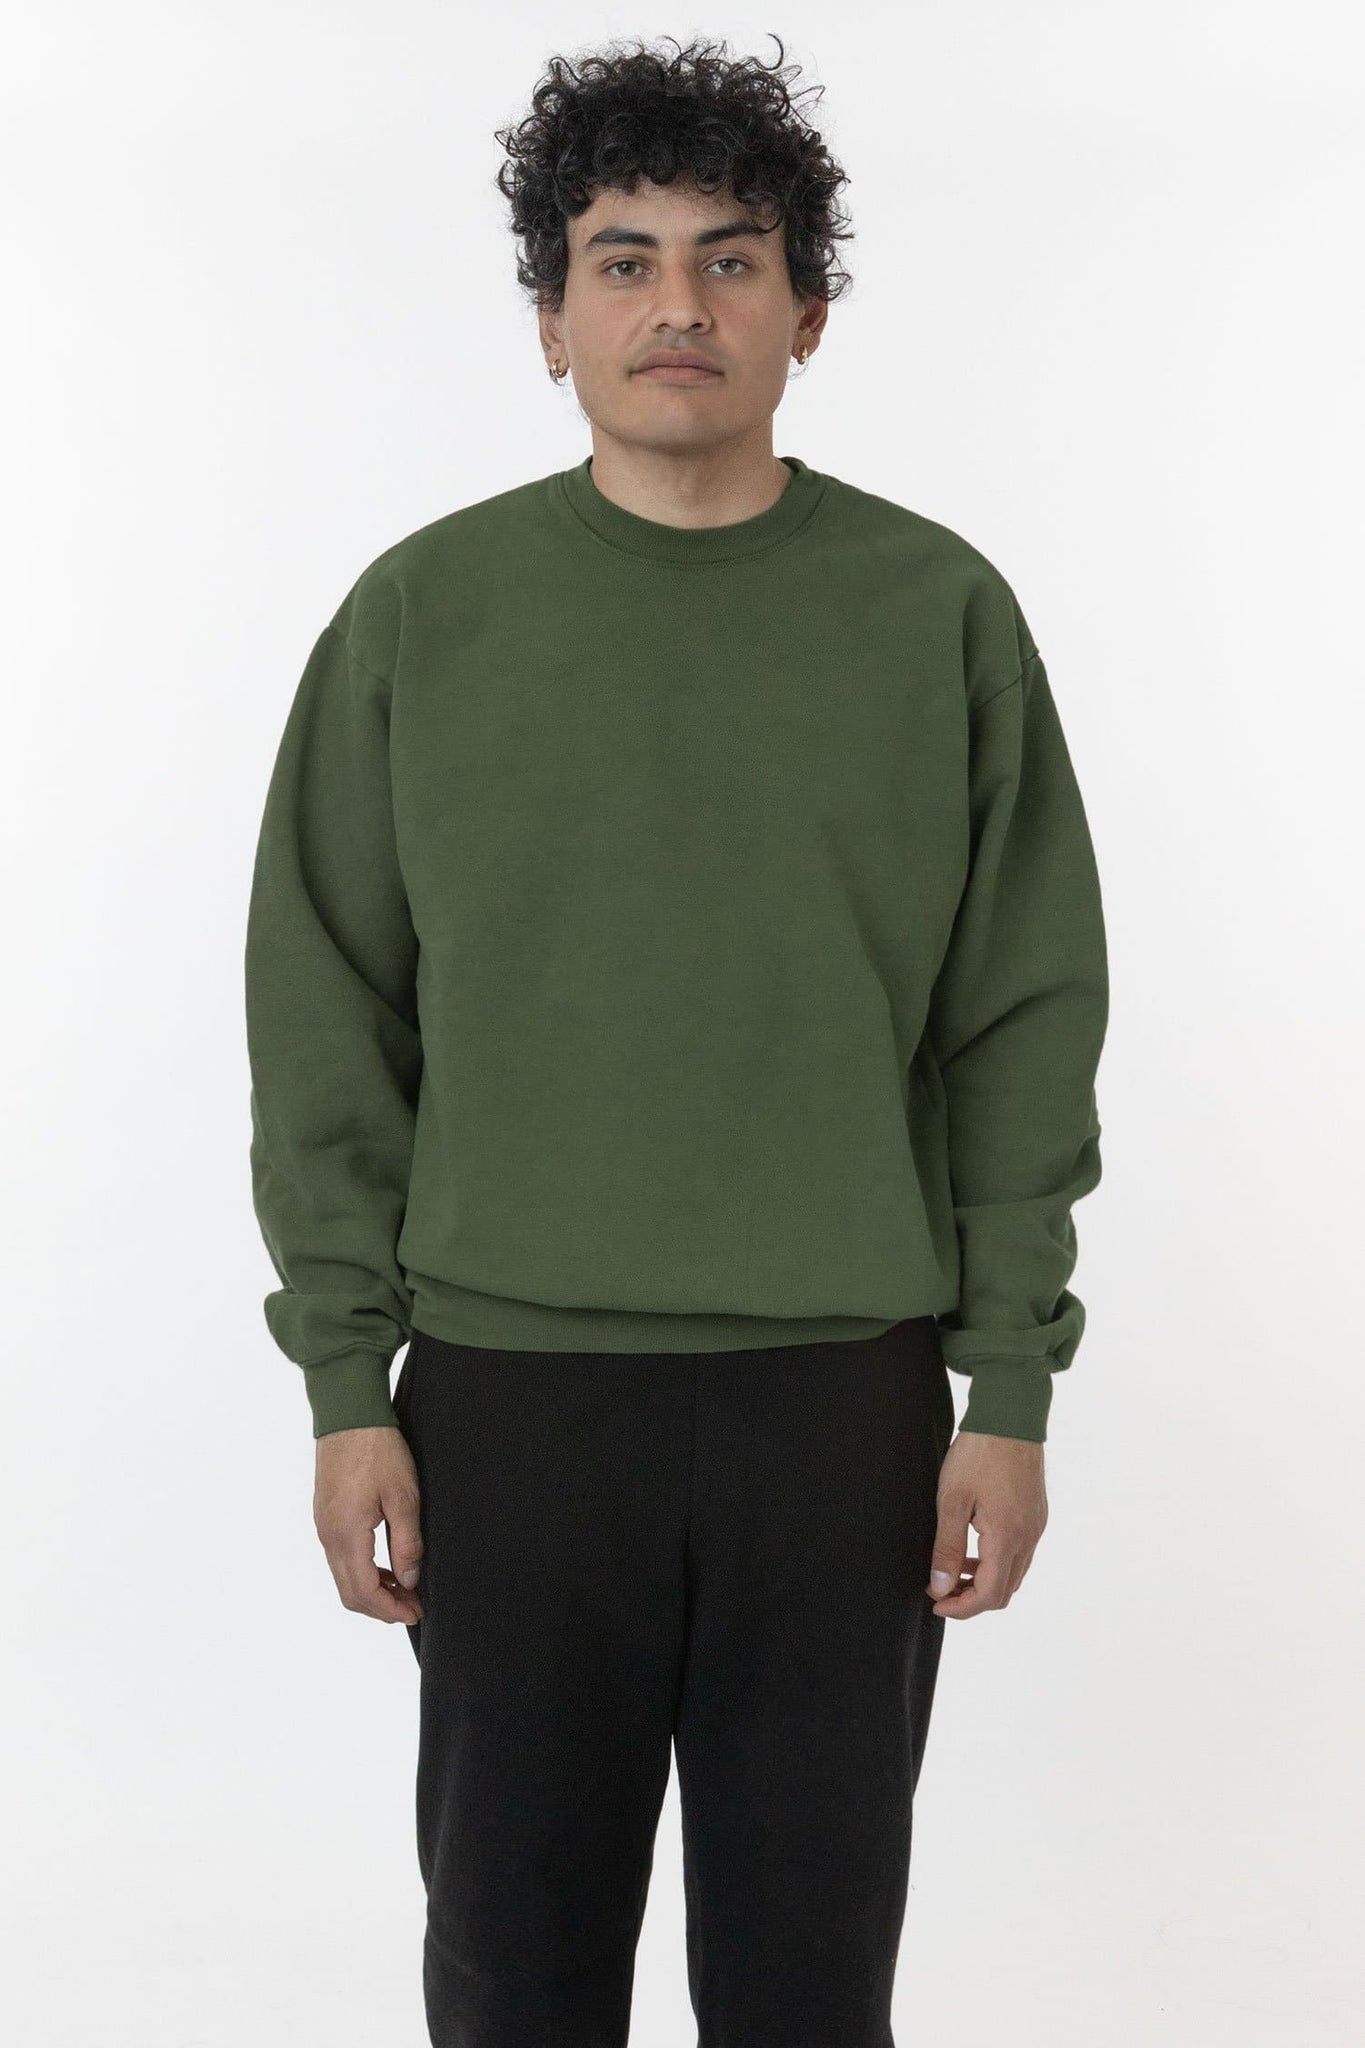 HF07GD - 14oz. Garment Dye Heavy Fleece Pullover Crewneck Sweatshirt